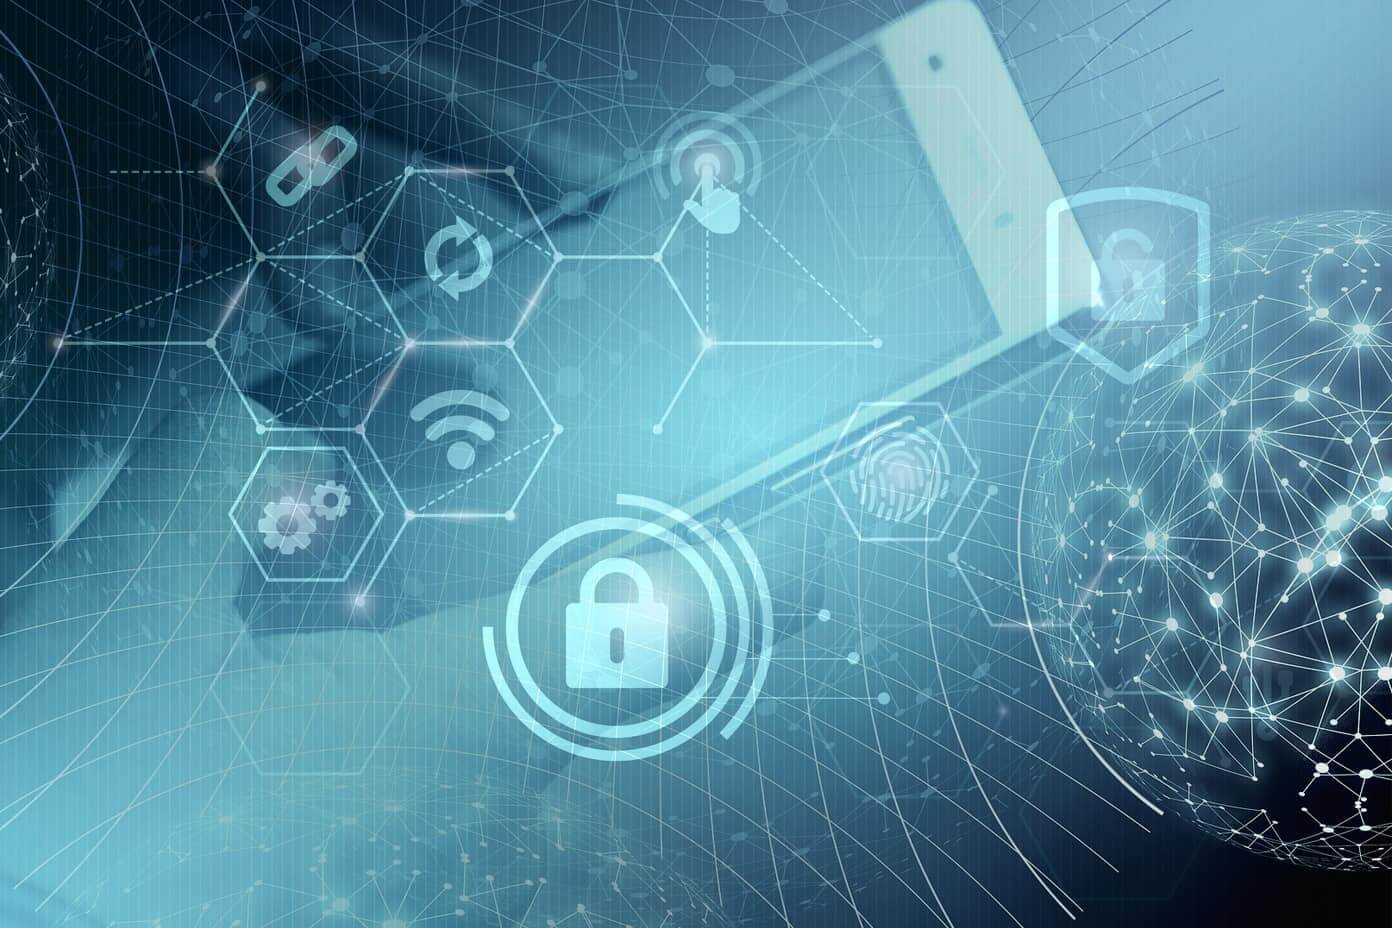 Cyber Attacks on IoT Devices Increase Manifolds